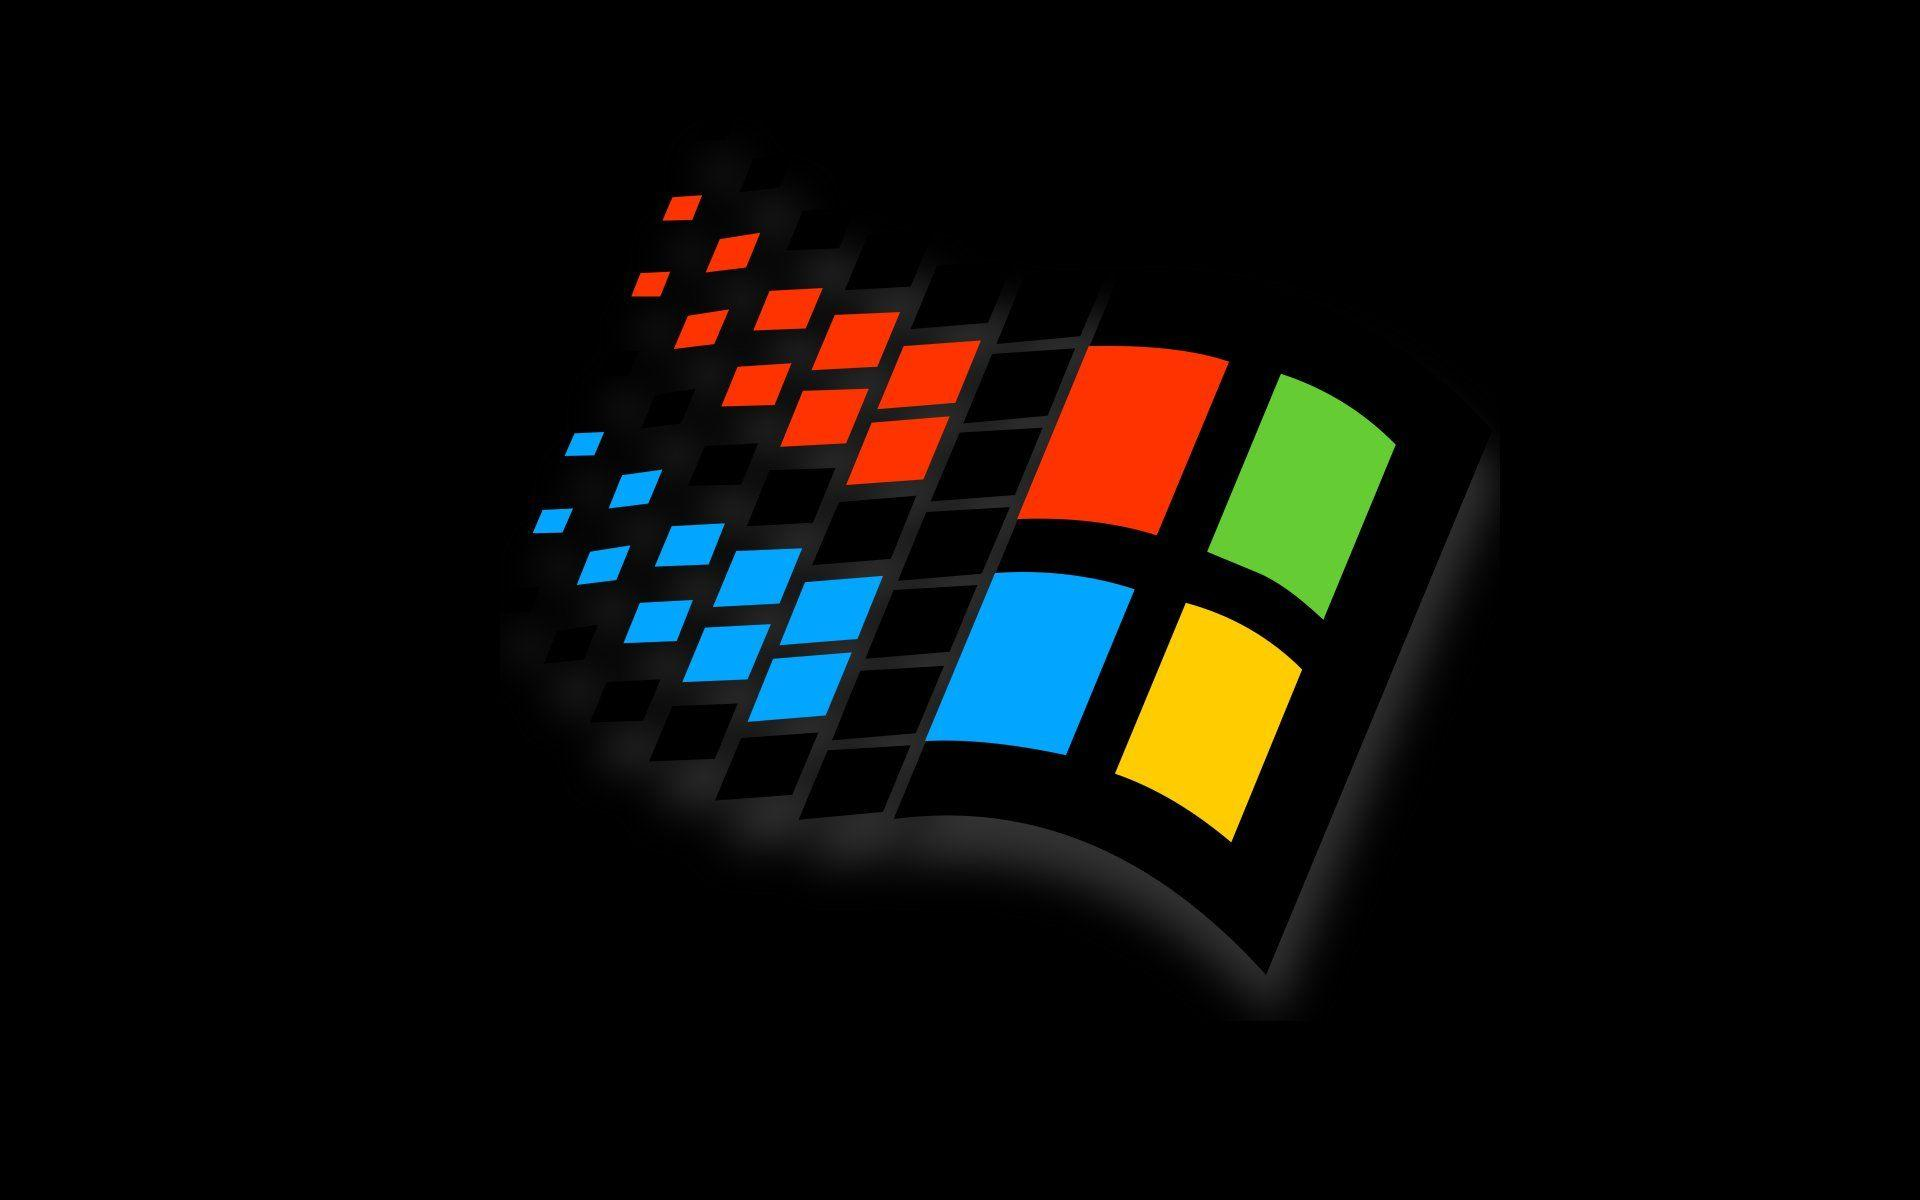 Windows 98 Wallpapers - Wallpaper Cave Windows 7 Classic Wallpaper